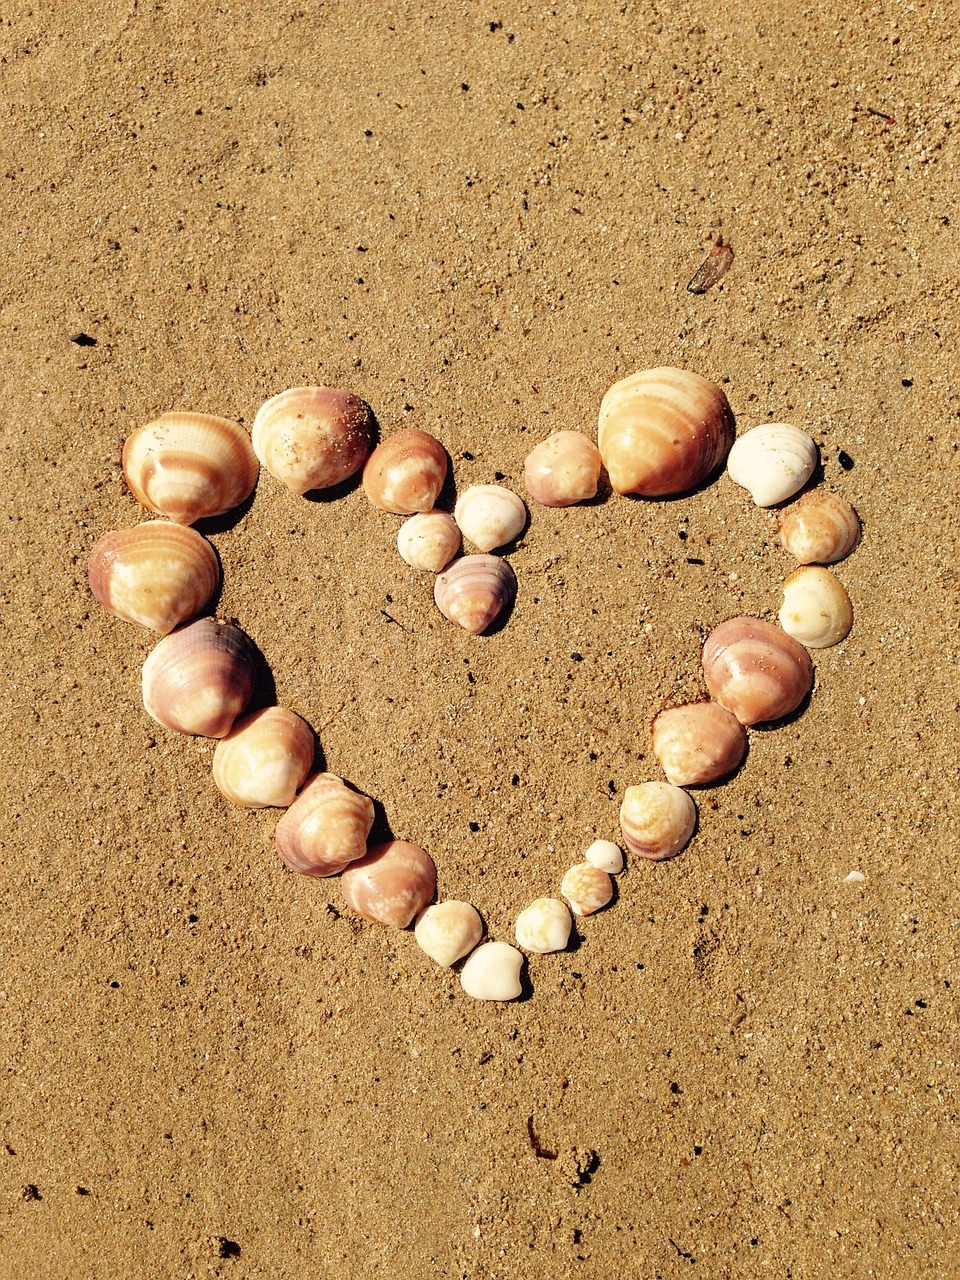 A Heart Shell on the sand